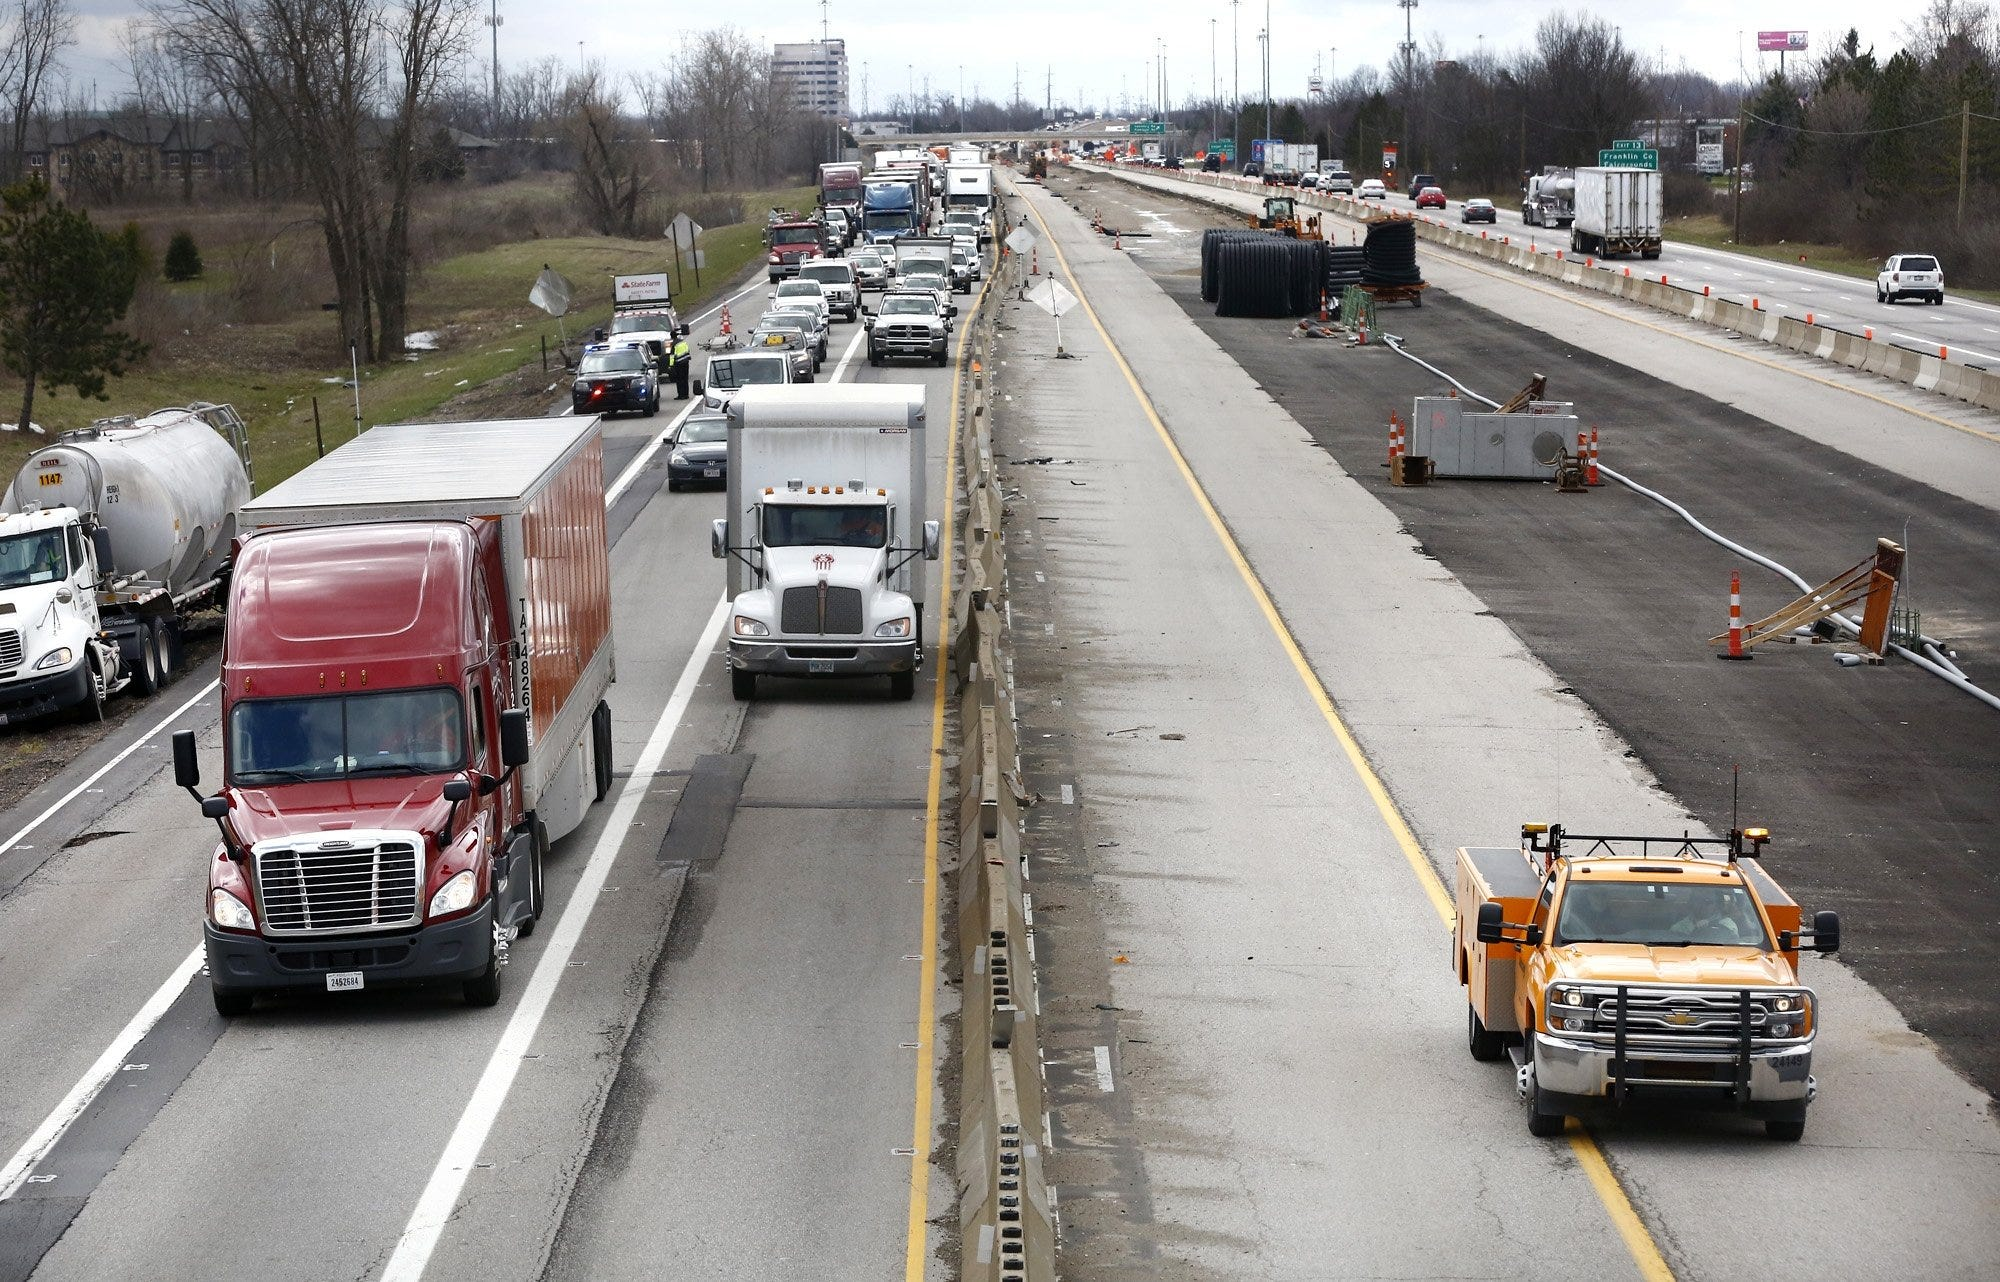 dispatch.com - Rick Rouan, The Columbus Dispatch - Could Ohio pause new construction? Gas tax revenue lags as drivers stay home in pandemic